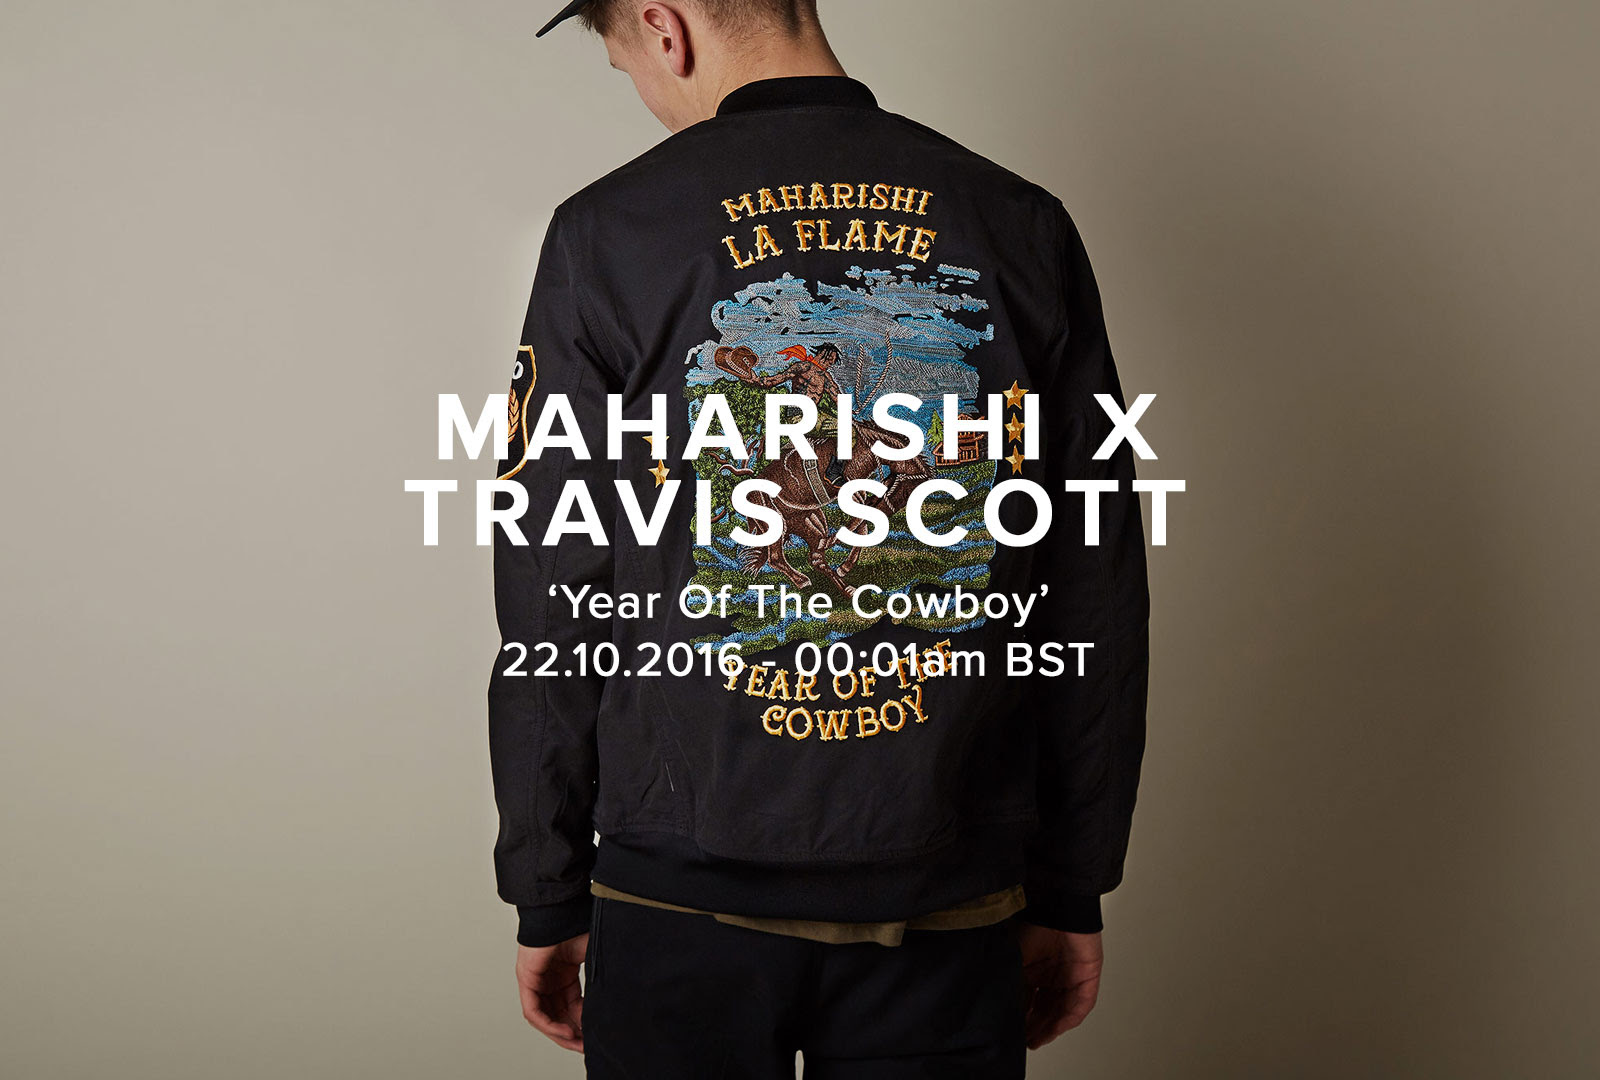 maharishi x Travis Scott 'Year Of The Cowboy' Collection Launch